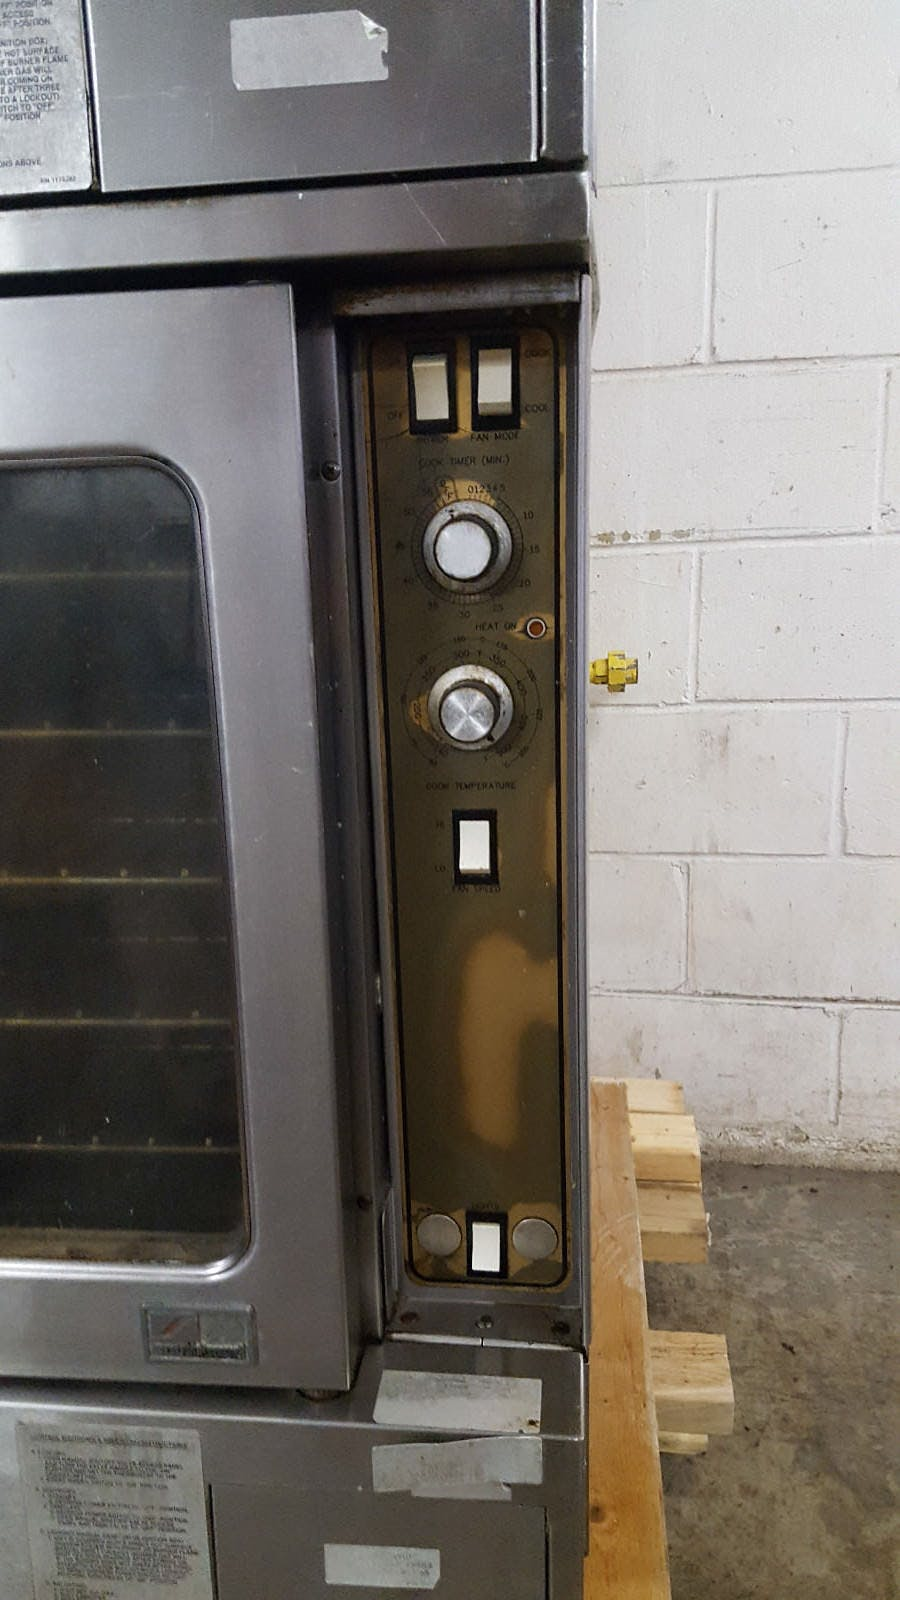 Southbend Marathoner Gold Natural Gas GS20SC Double Stack Convection Oven Tested - sold by Jak's Restaurant Supply